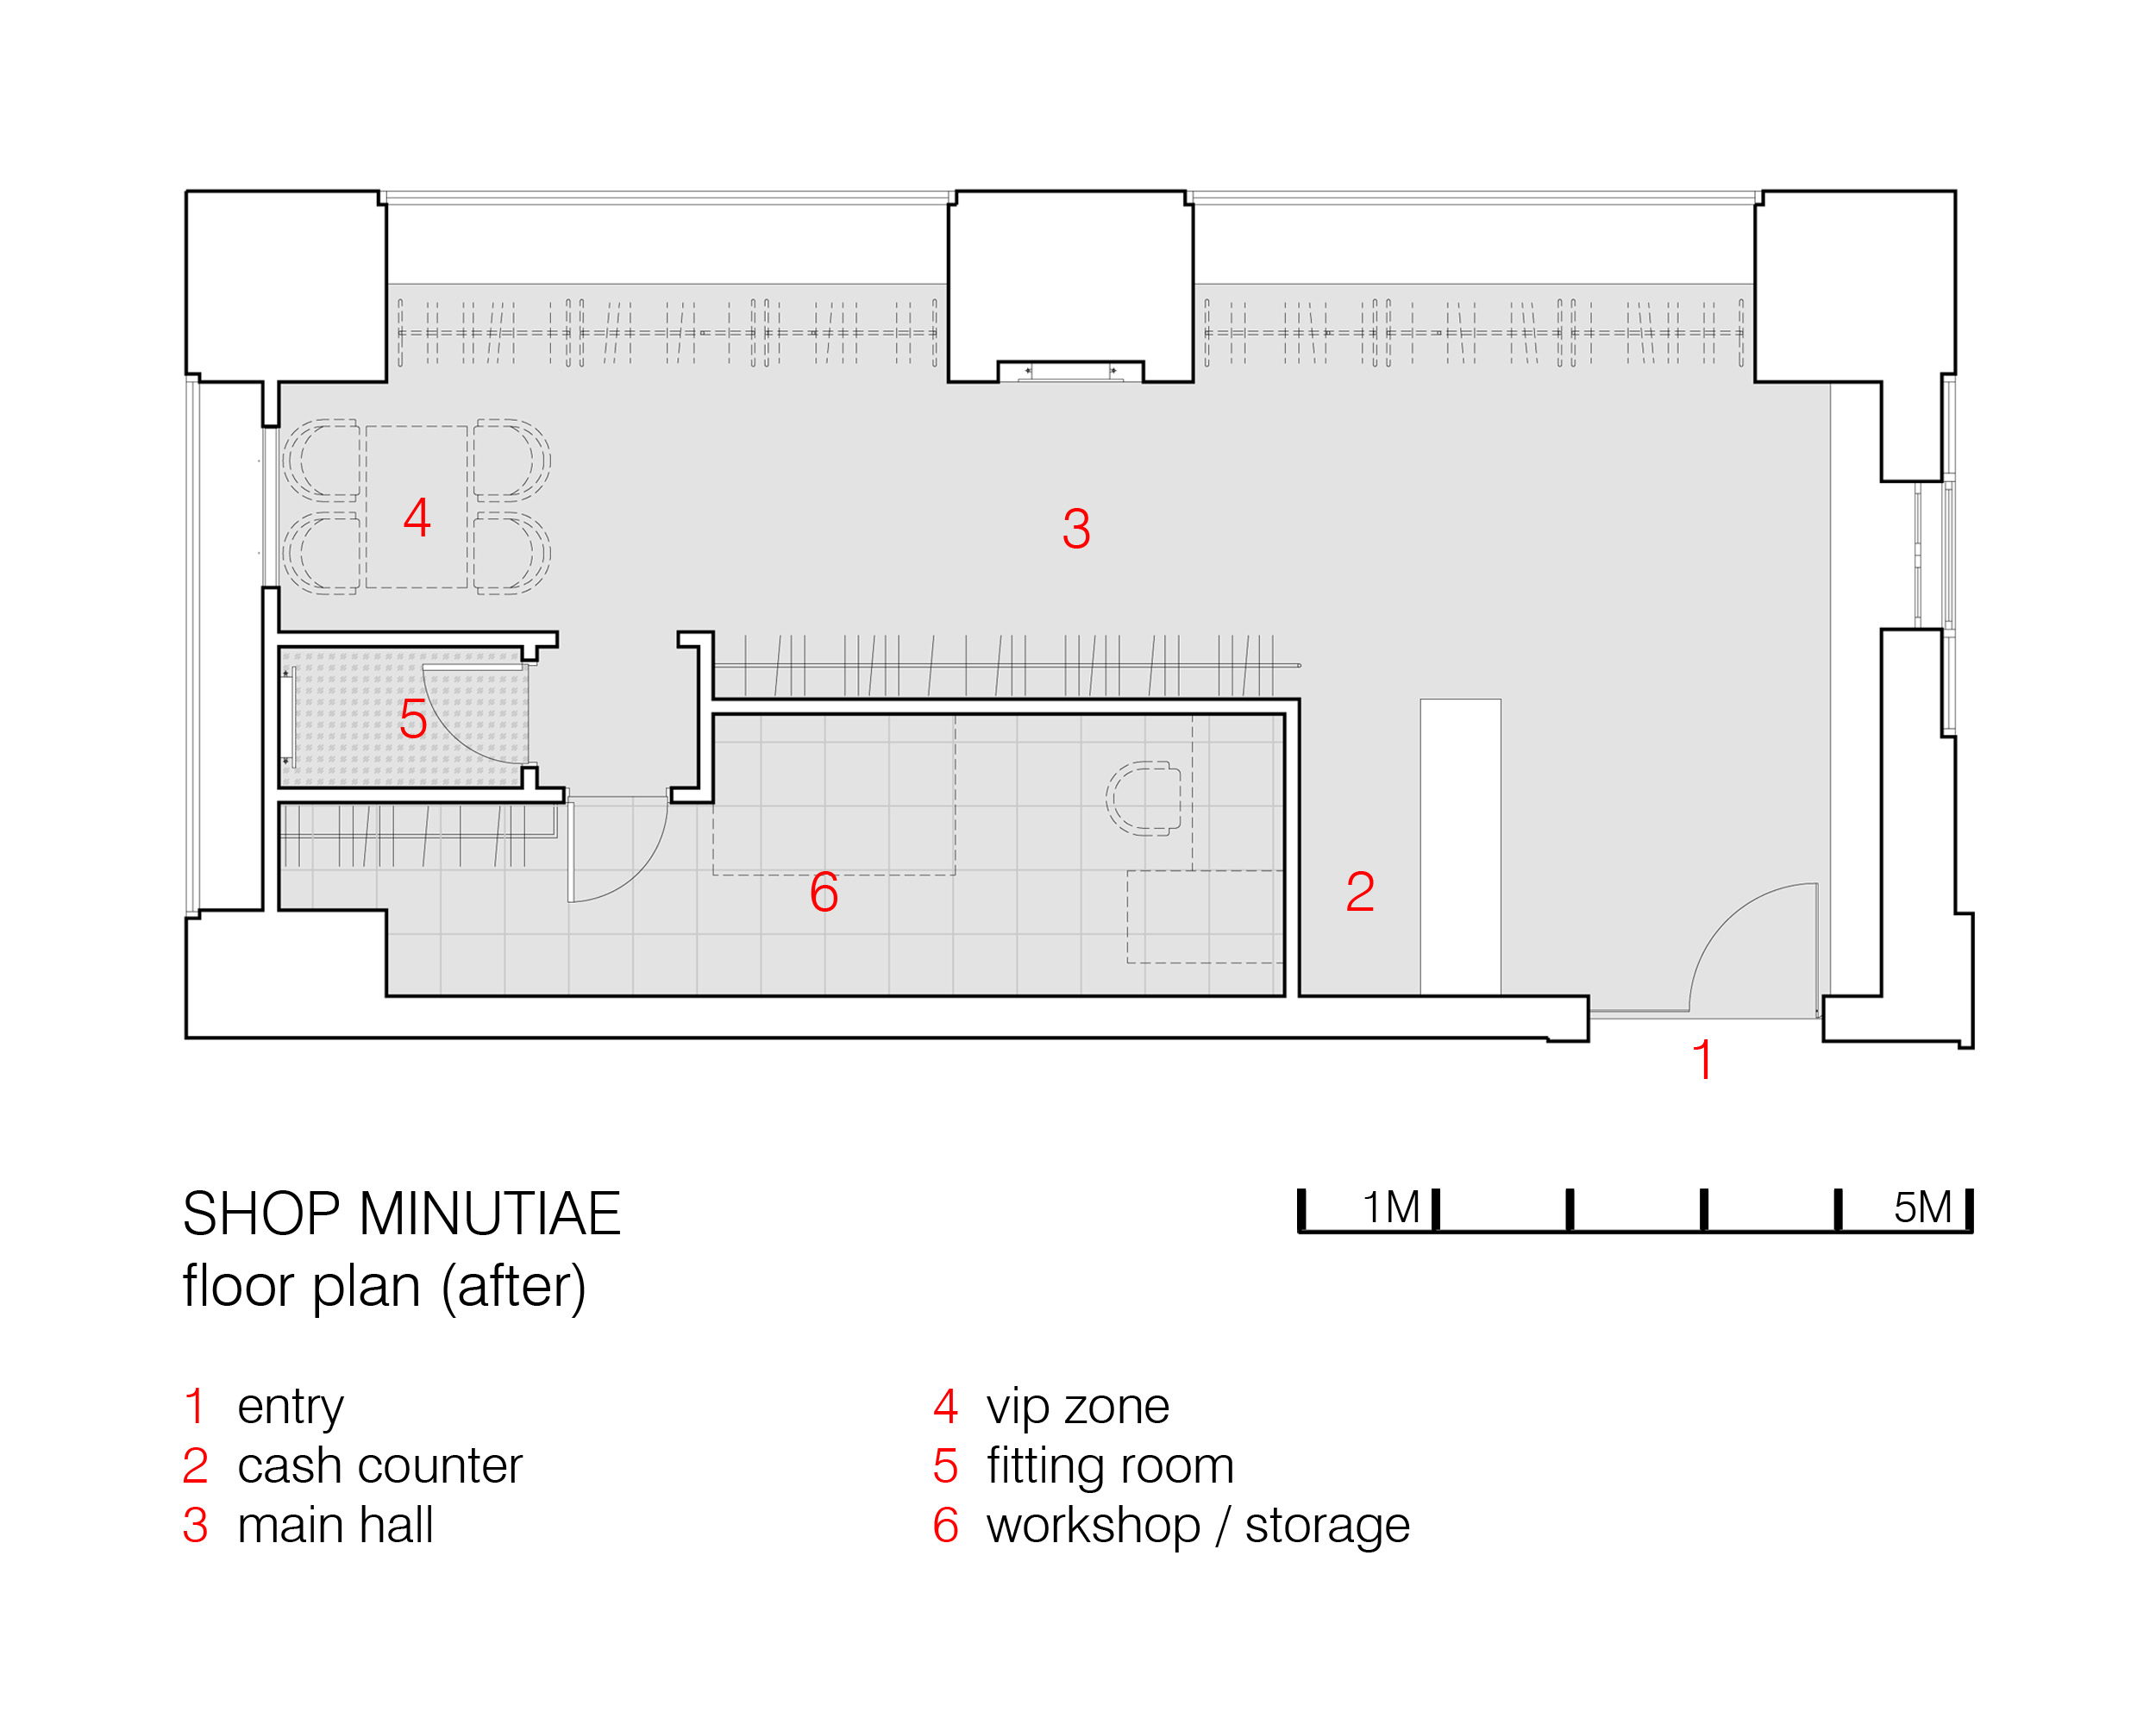 Shop Minutiae Floorplan (after)